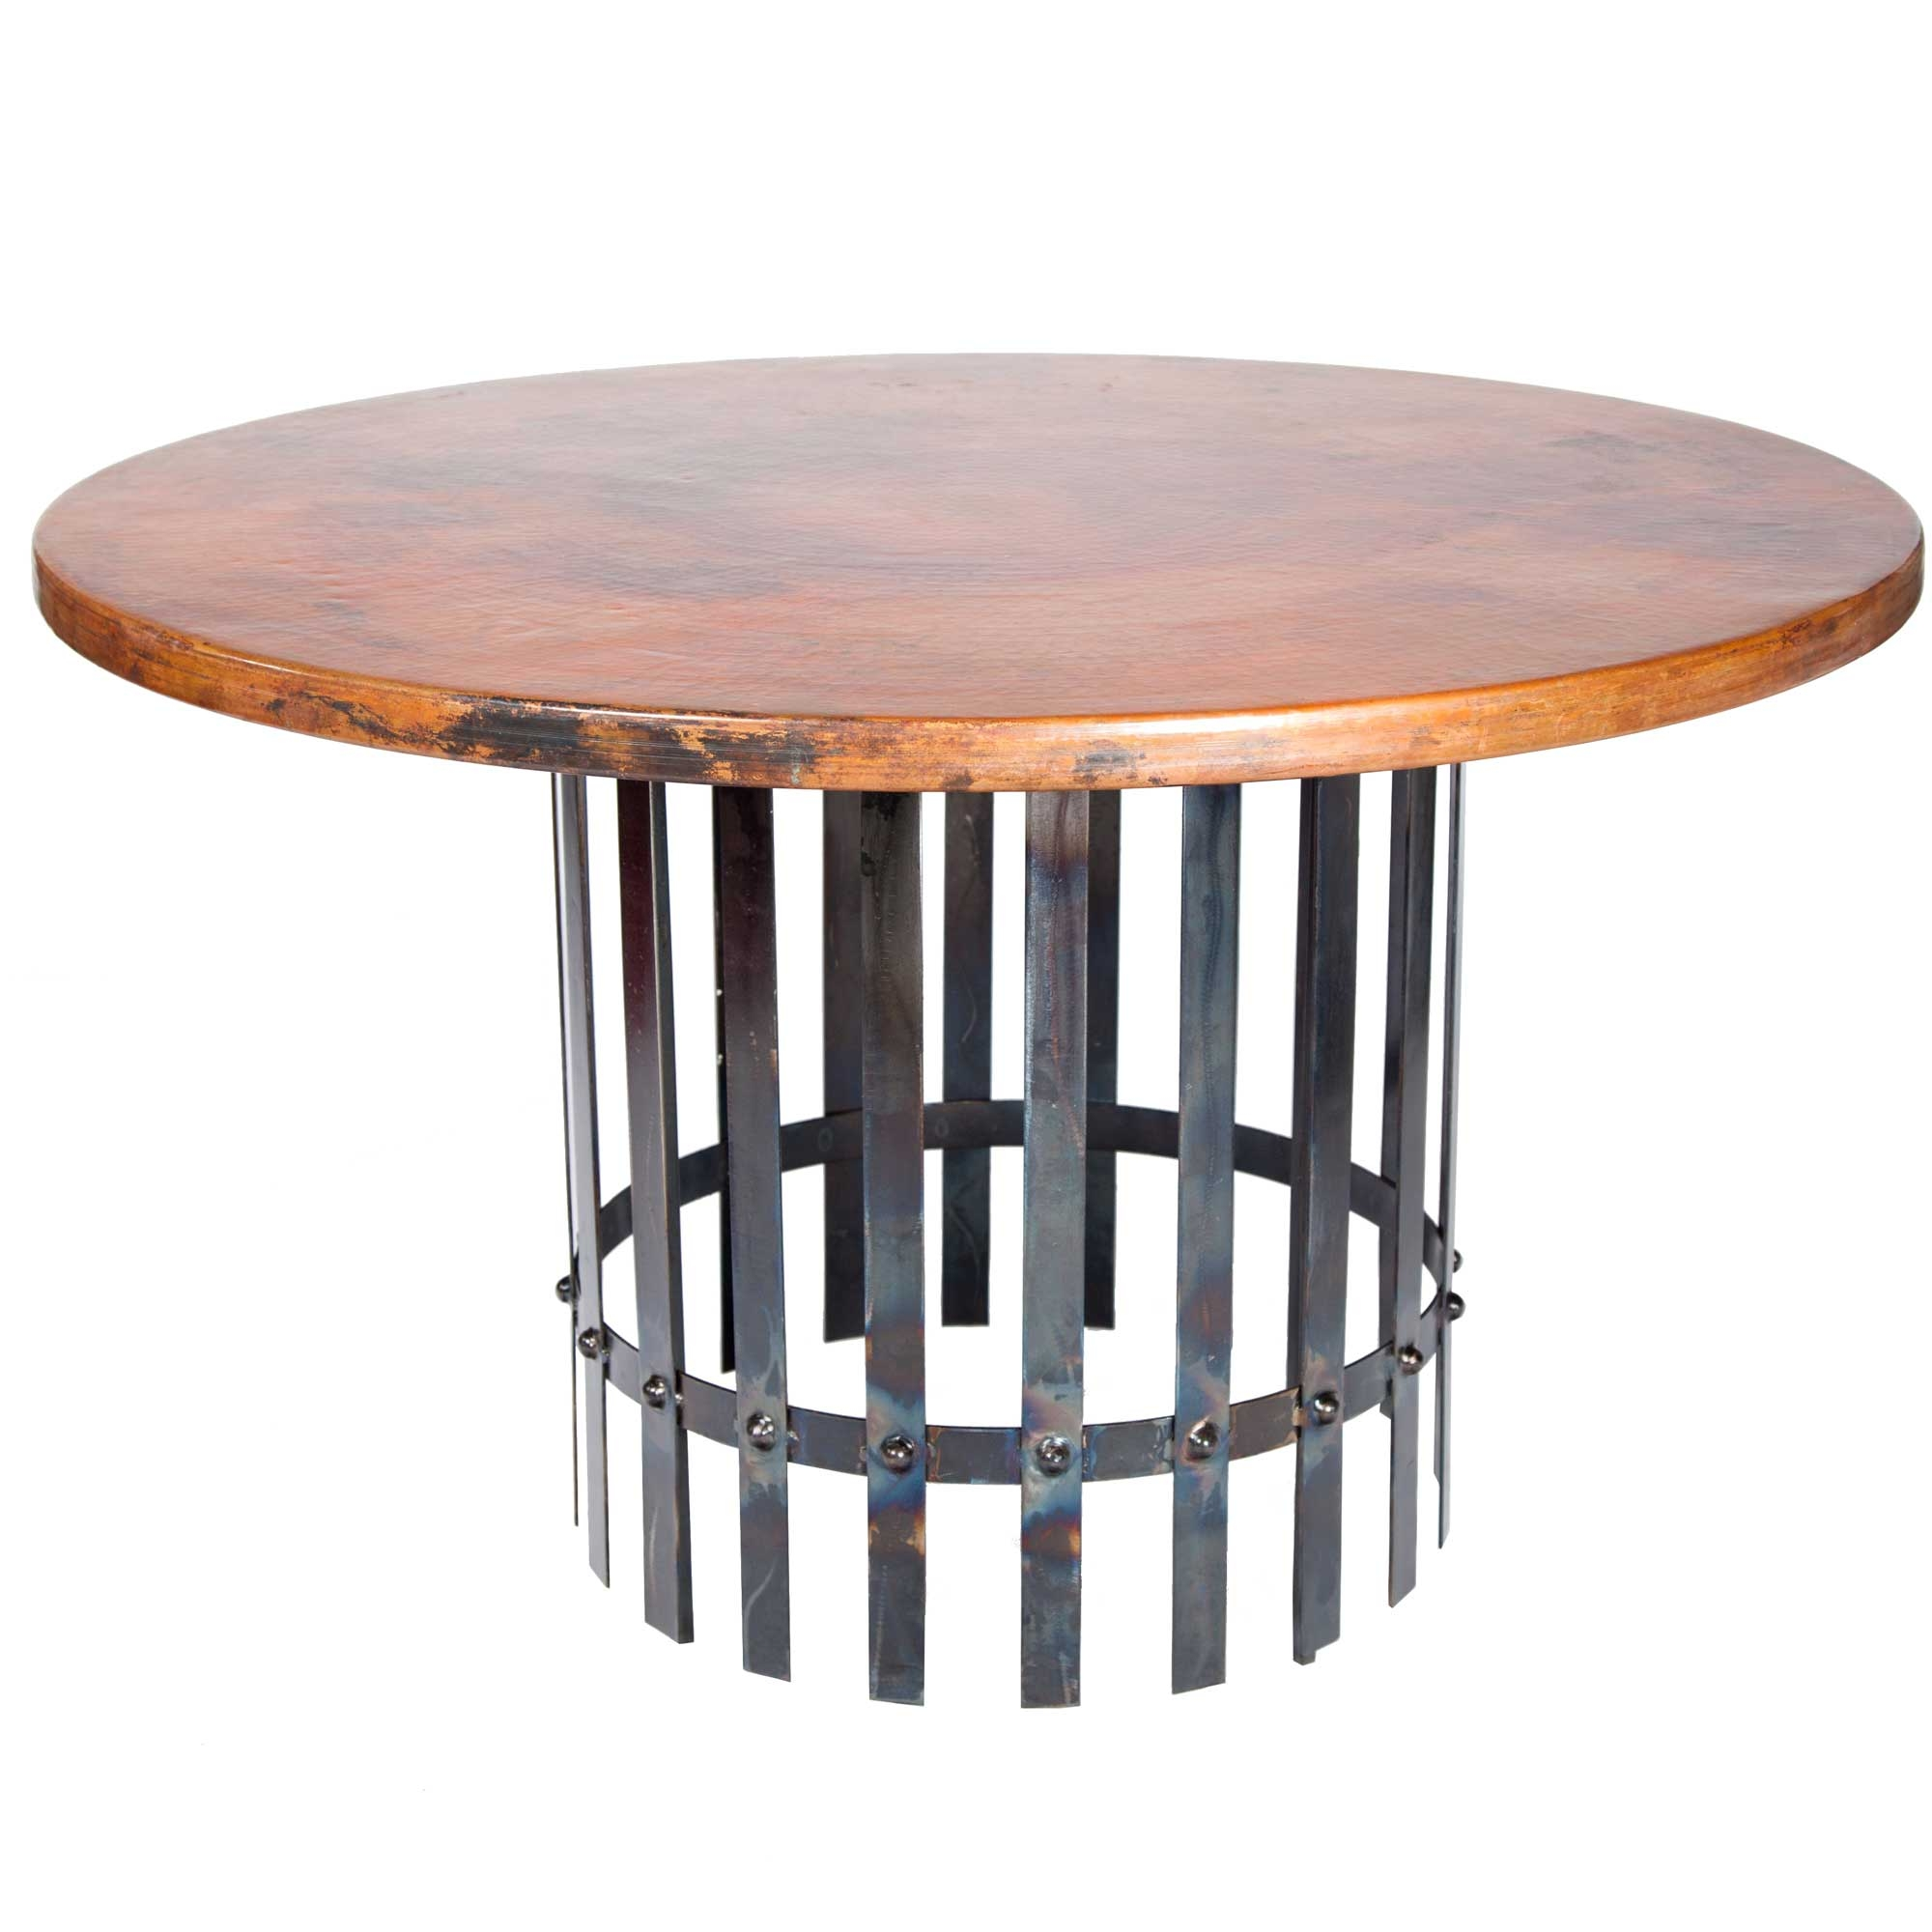 Ashton Iron Dining Table With Round Hammered Copper Top - Hammered copper round dining table